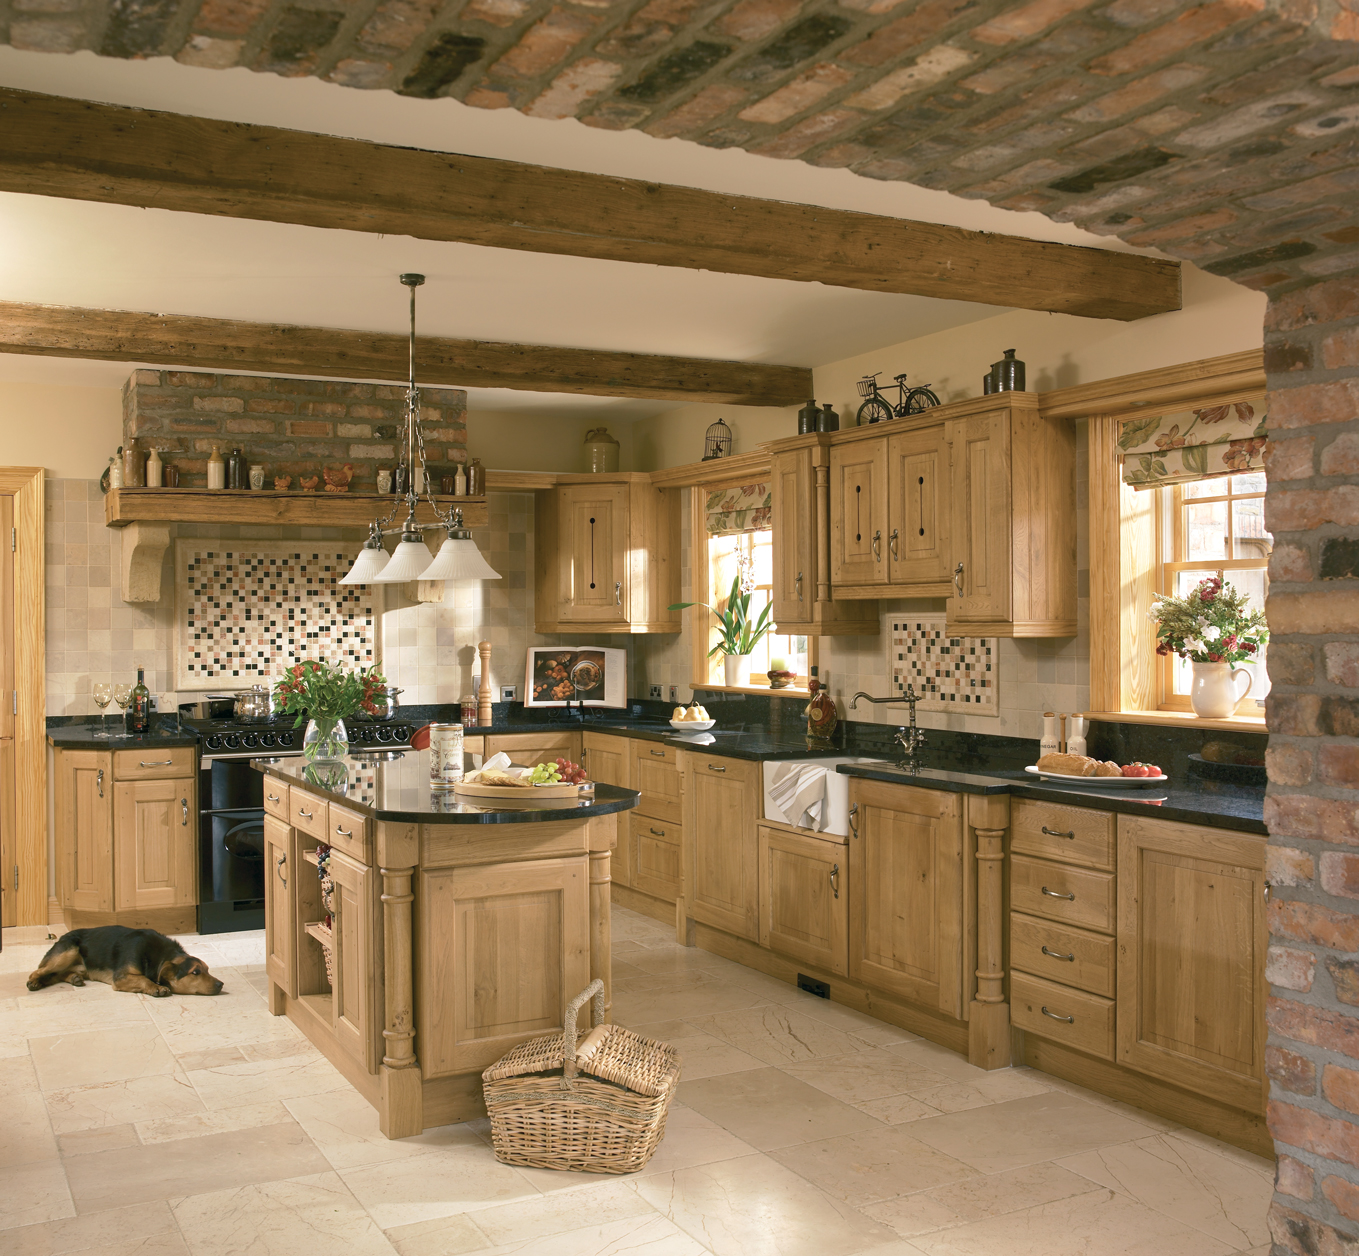 Oak Cabinet Kitchen Ideas Top Medium Oak Kitchen Cabinets: Castleshane Kitchens